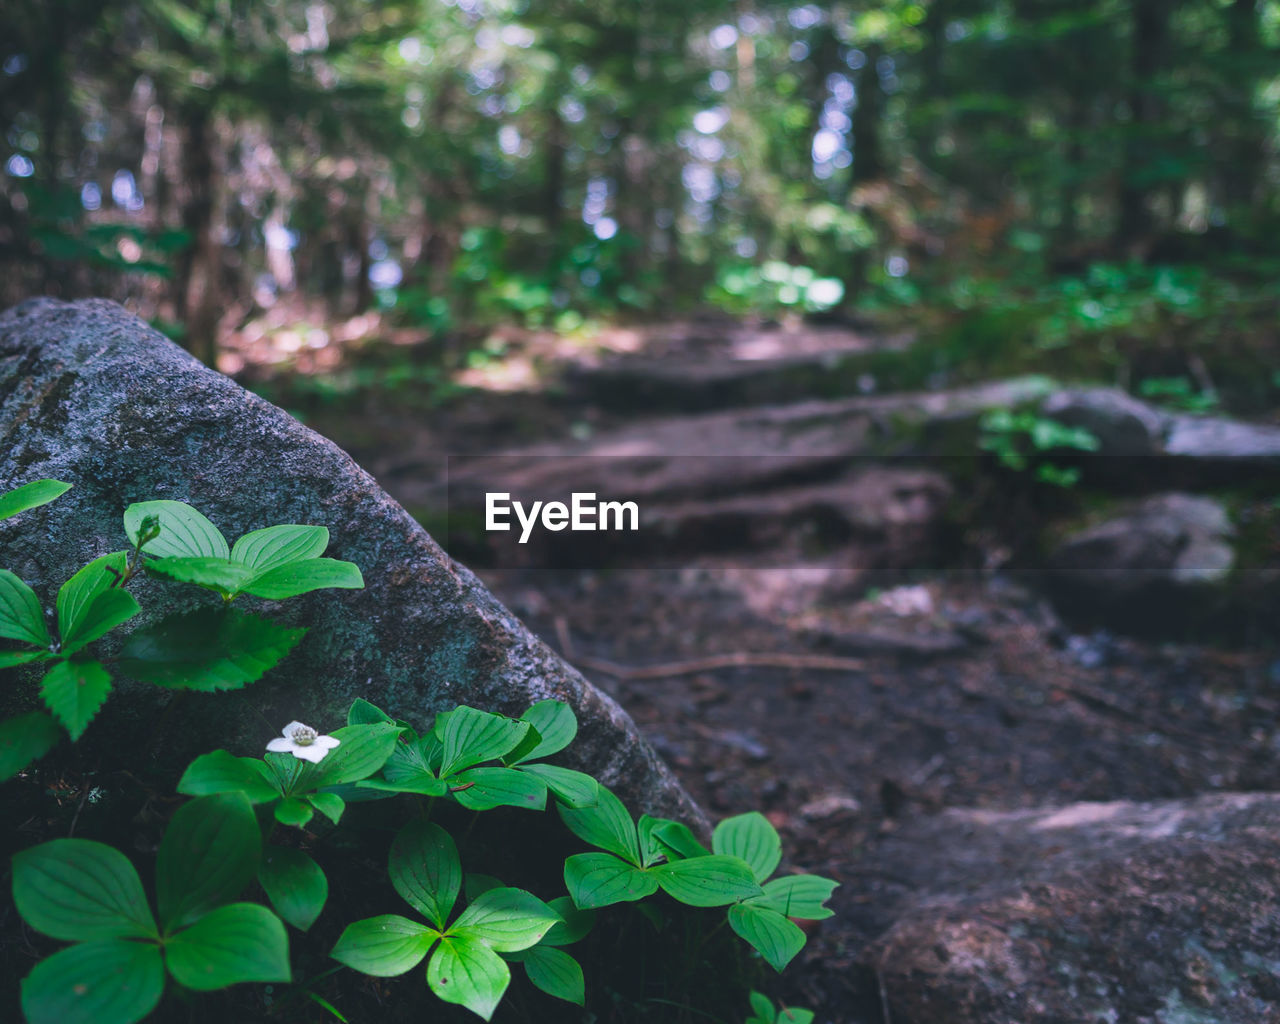 plant, growth, nature, plant part, leaf, green color, land, forest, day, tree, no people, tree trunk, focus on foreground, trunk, close-up, outdoors, tranquility, beauty in nature, rock, selective focus